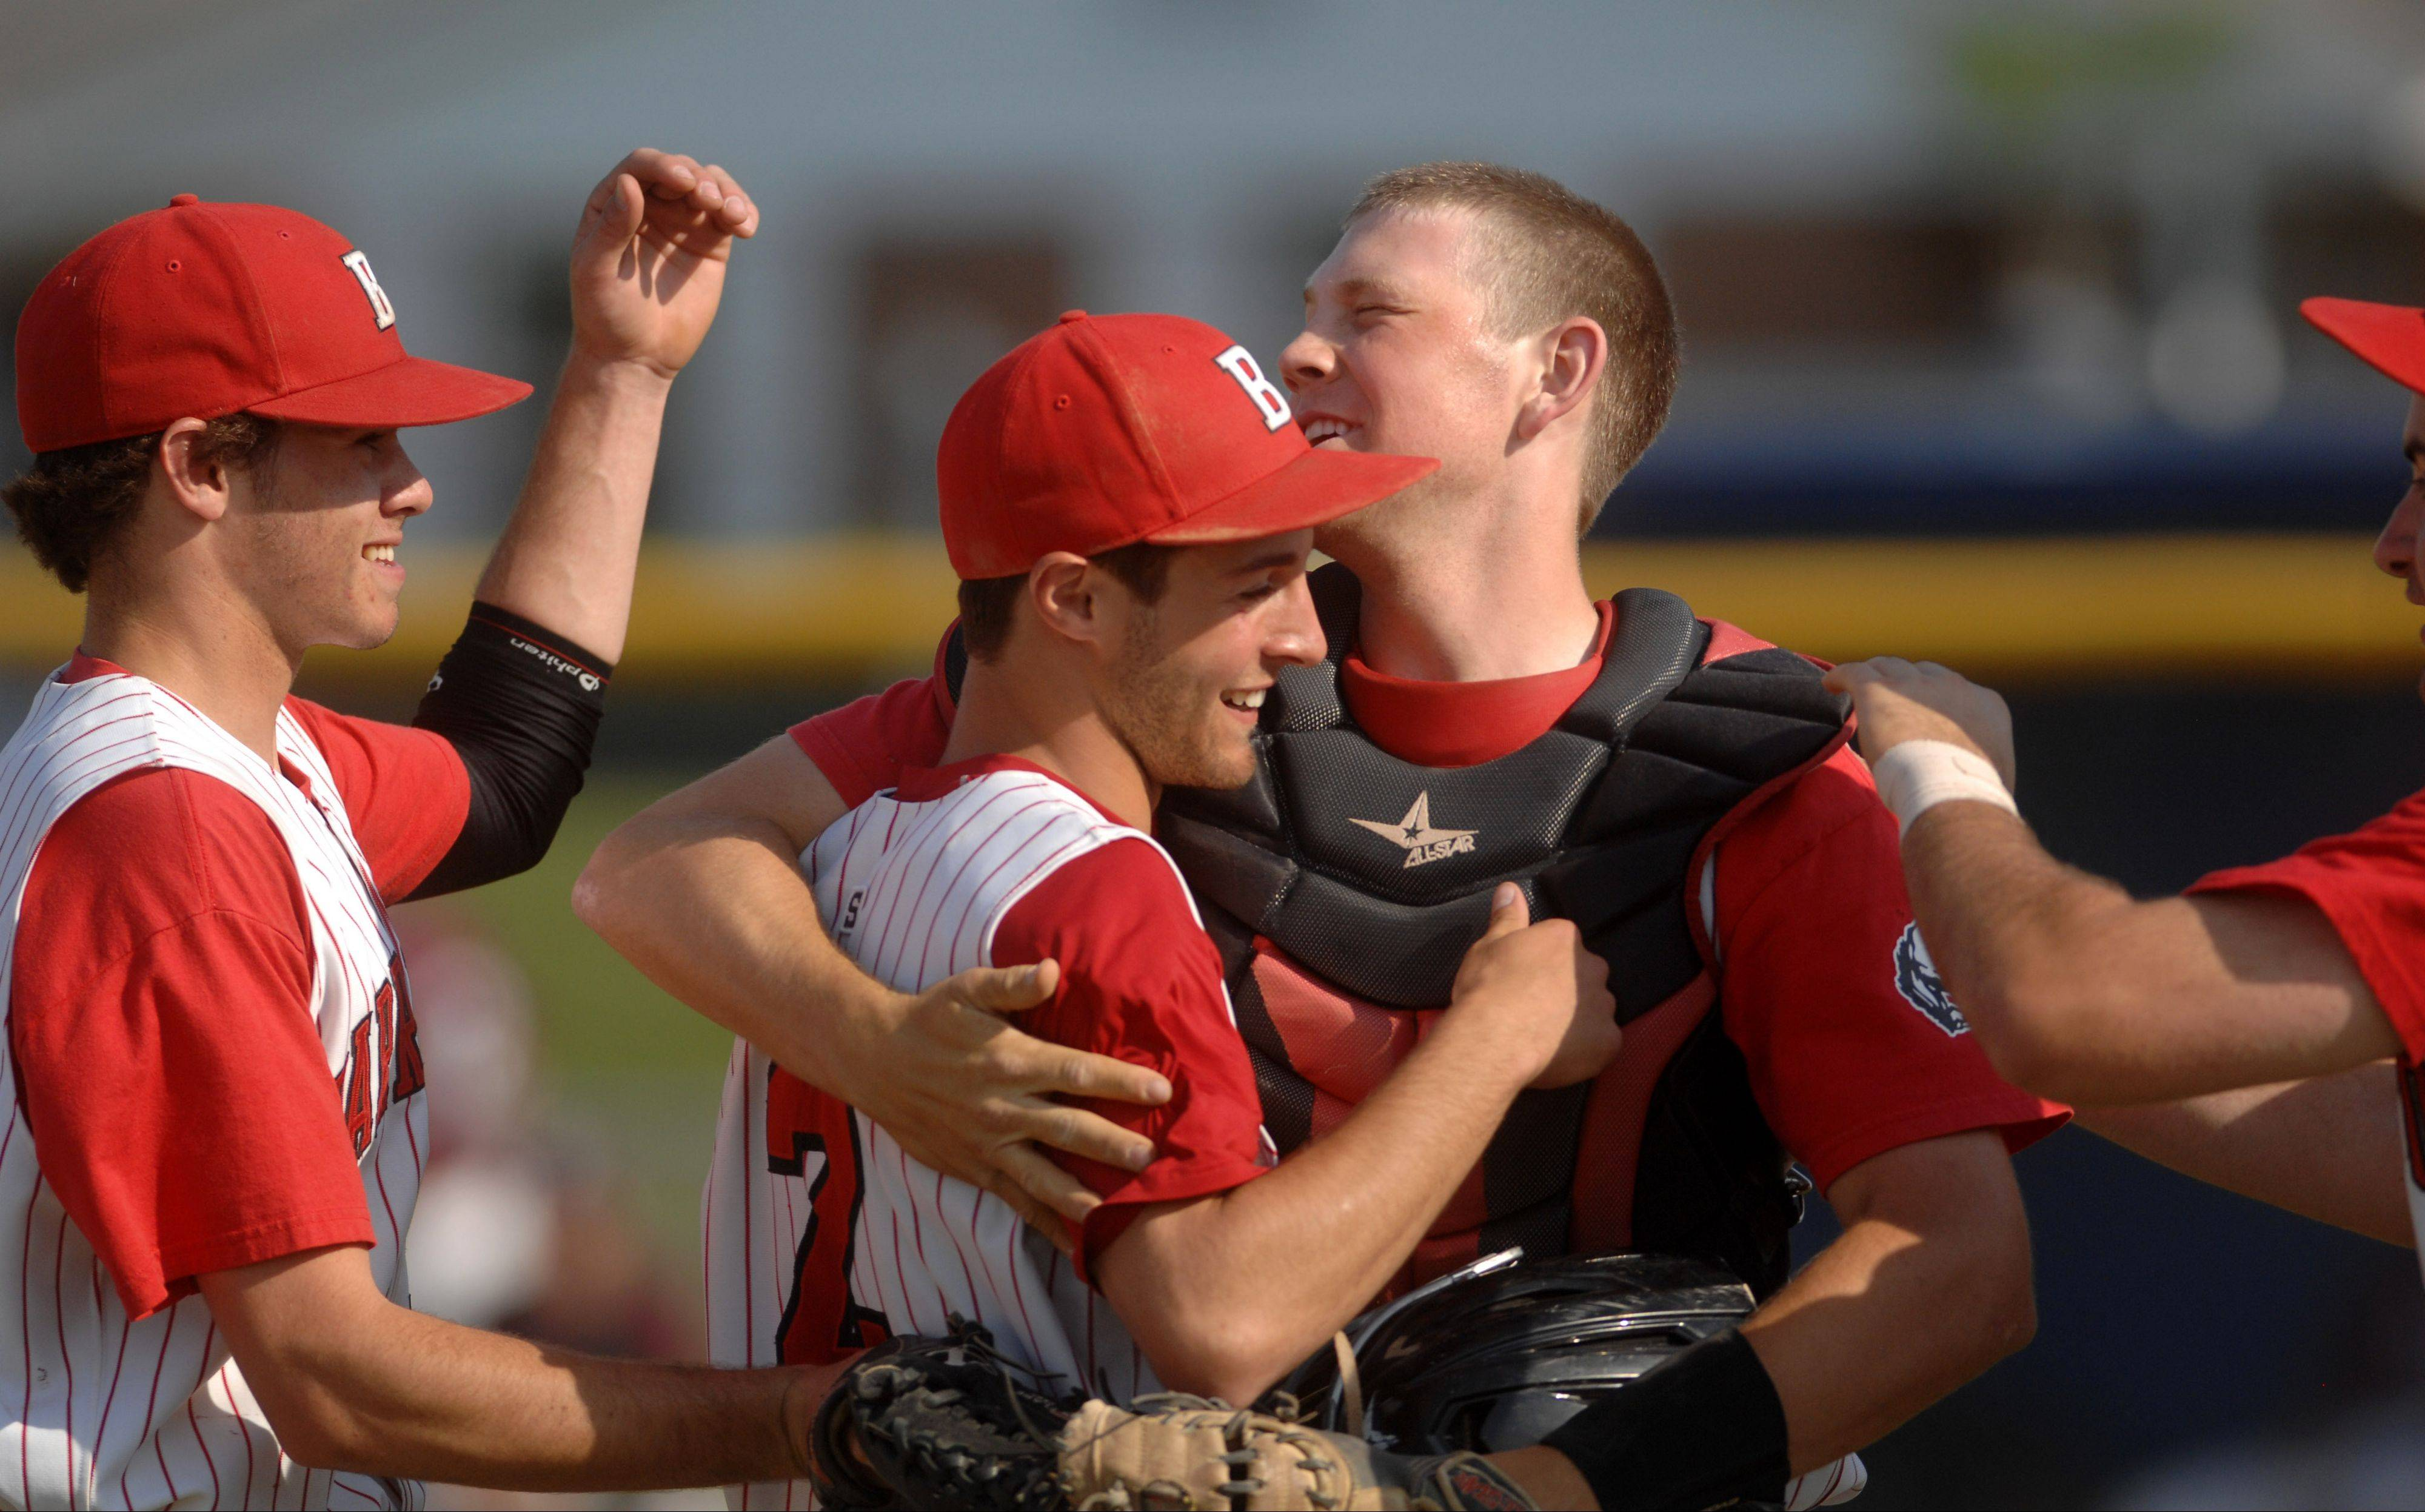 Barrington catcher Ryan Lidge hugs teammate Chris Coco after a well-executed rundown led to a putout at the plate during the regional semifinals at Larkin last May.